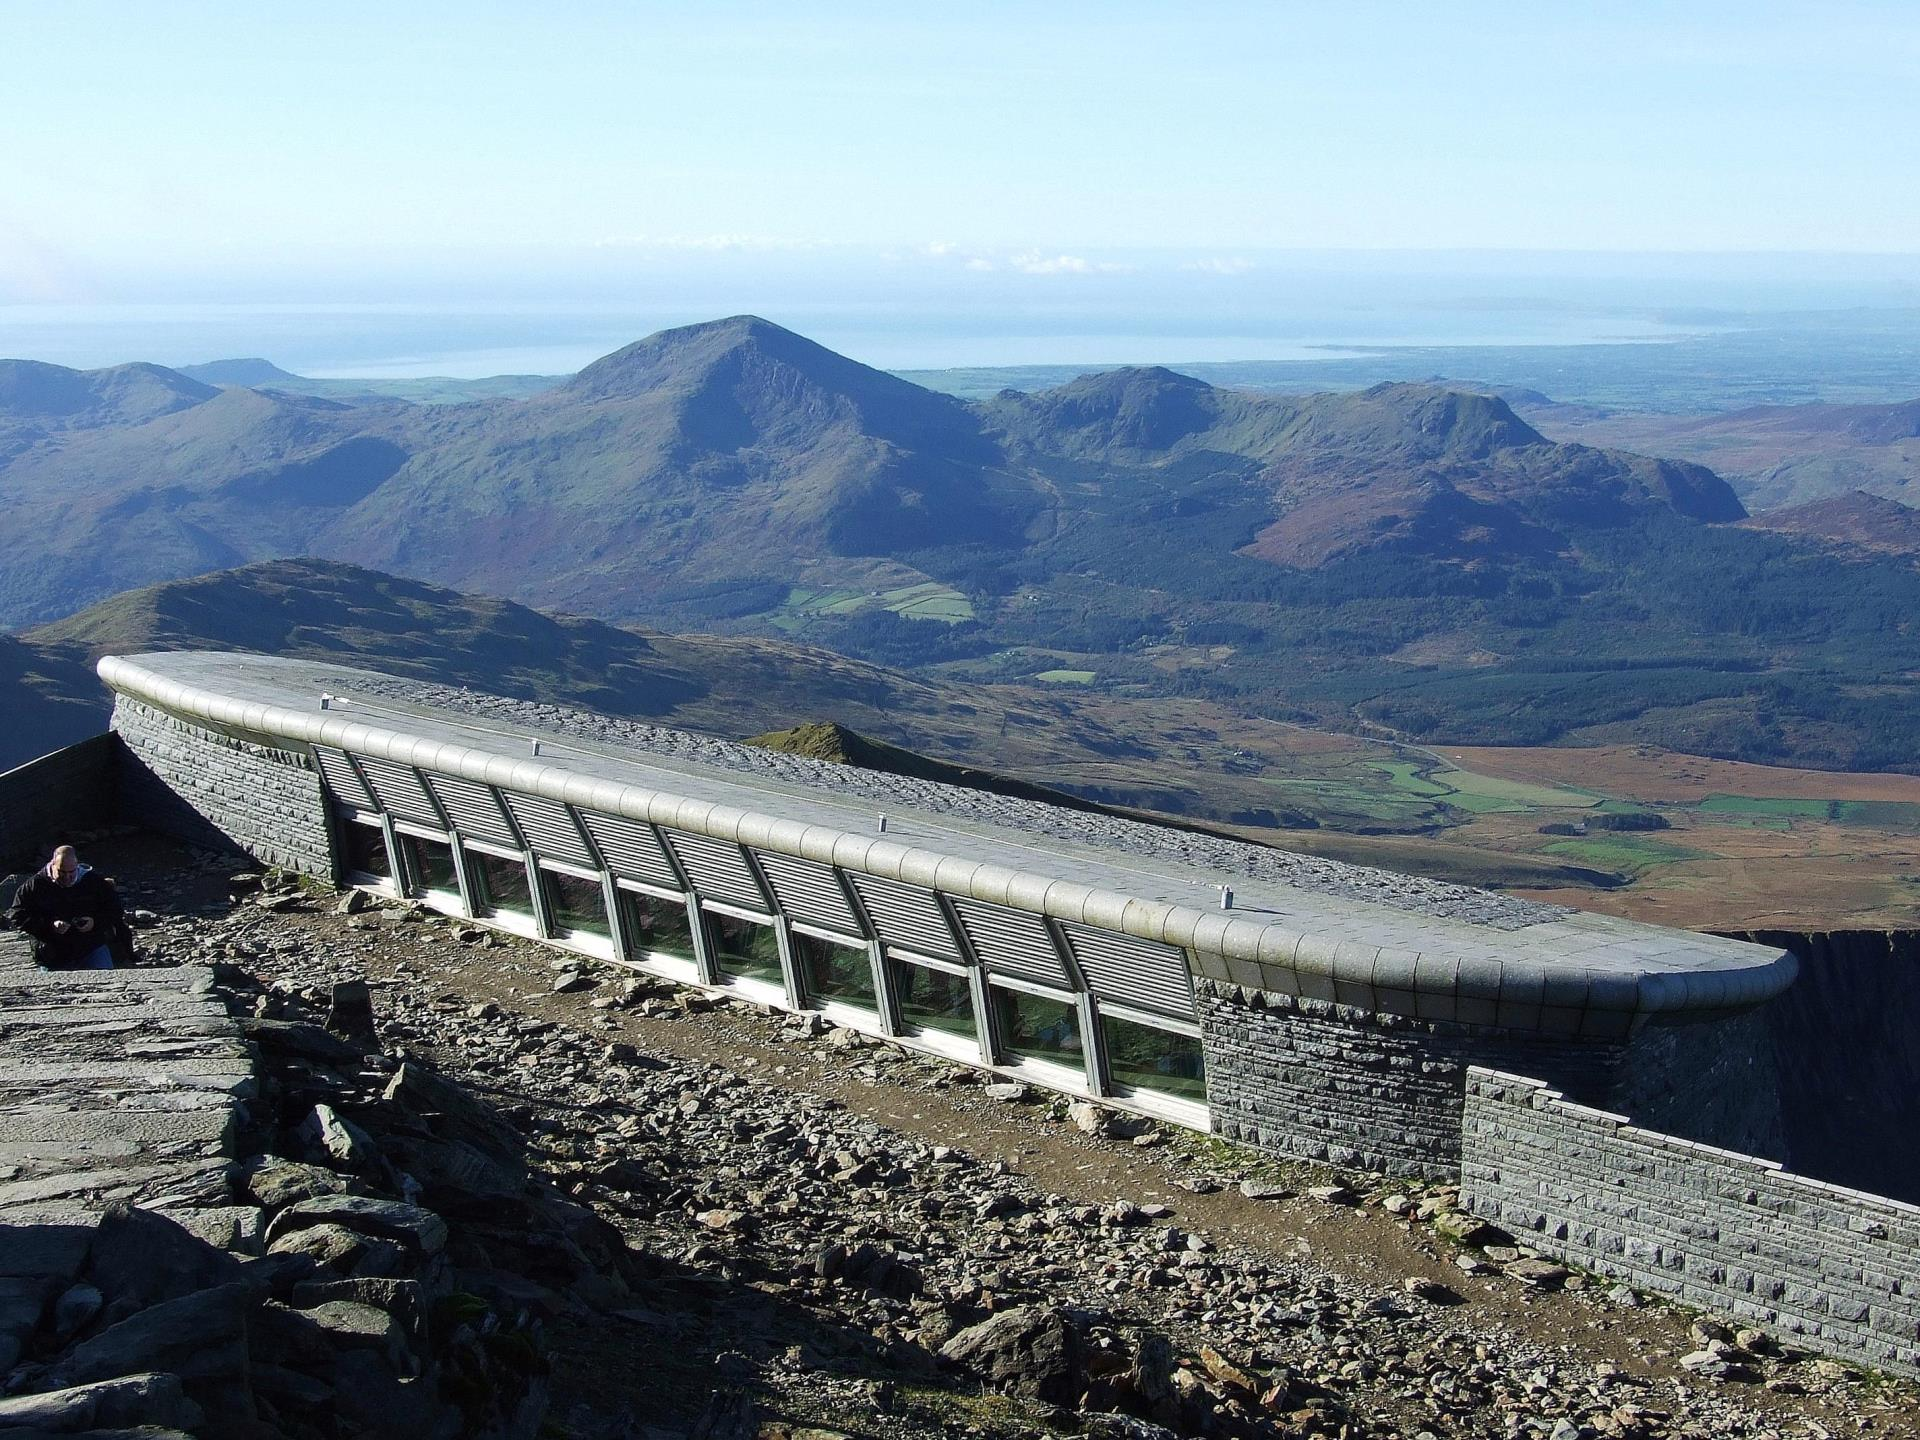 Hafod Eryri on Snowdon Summit